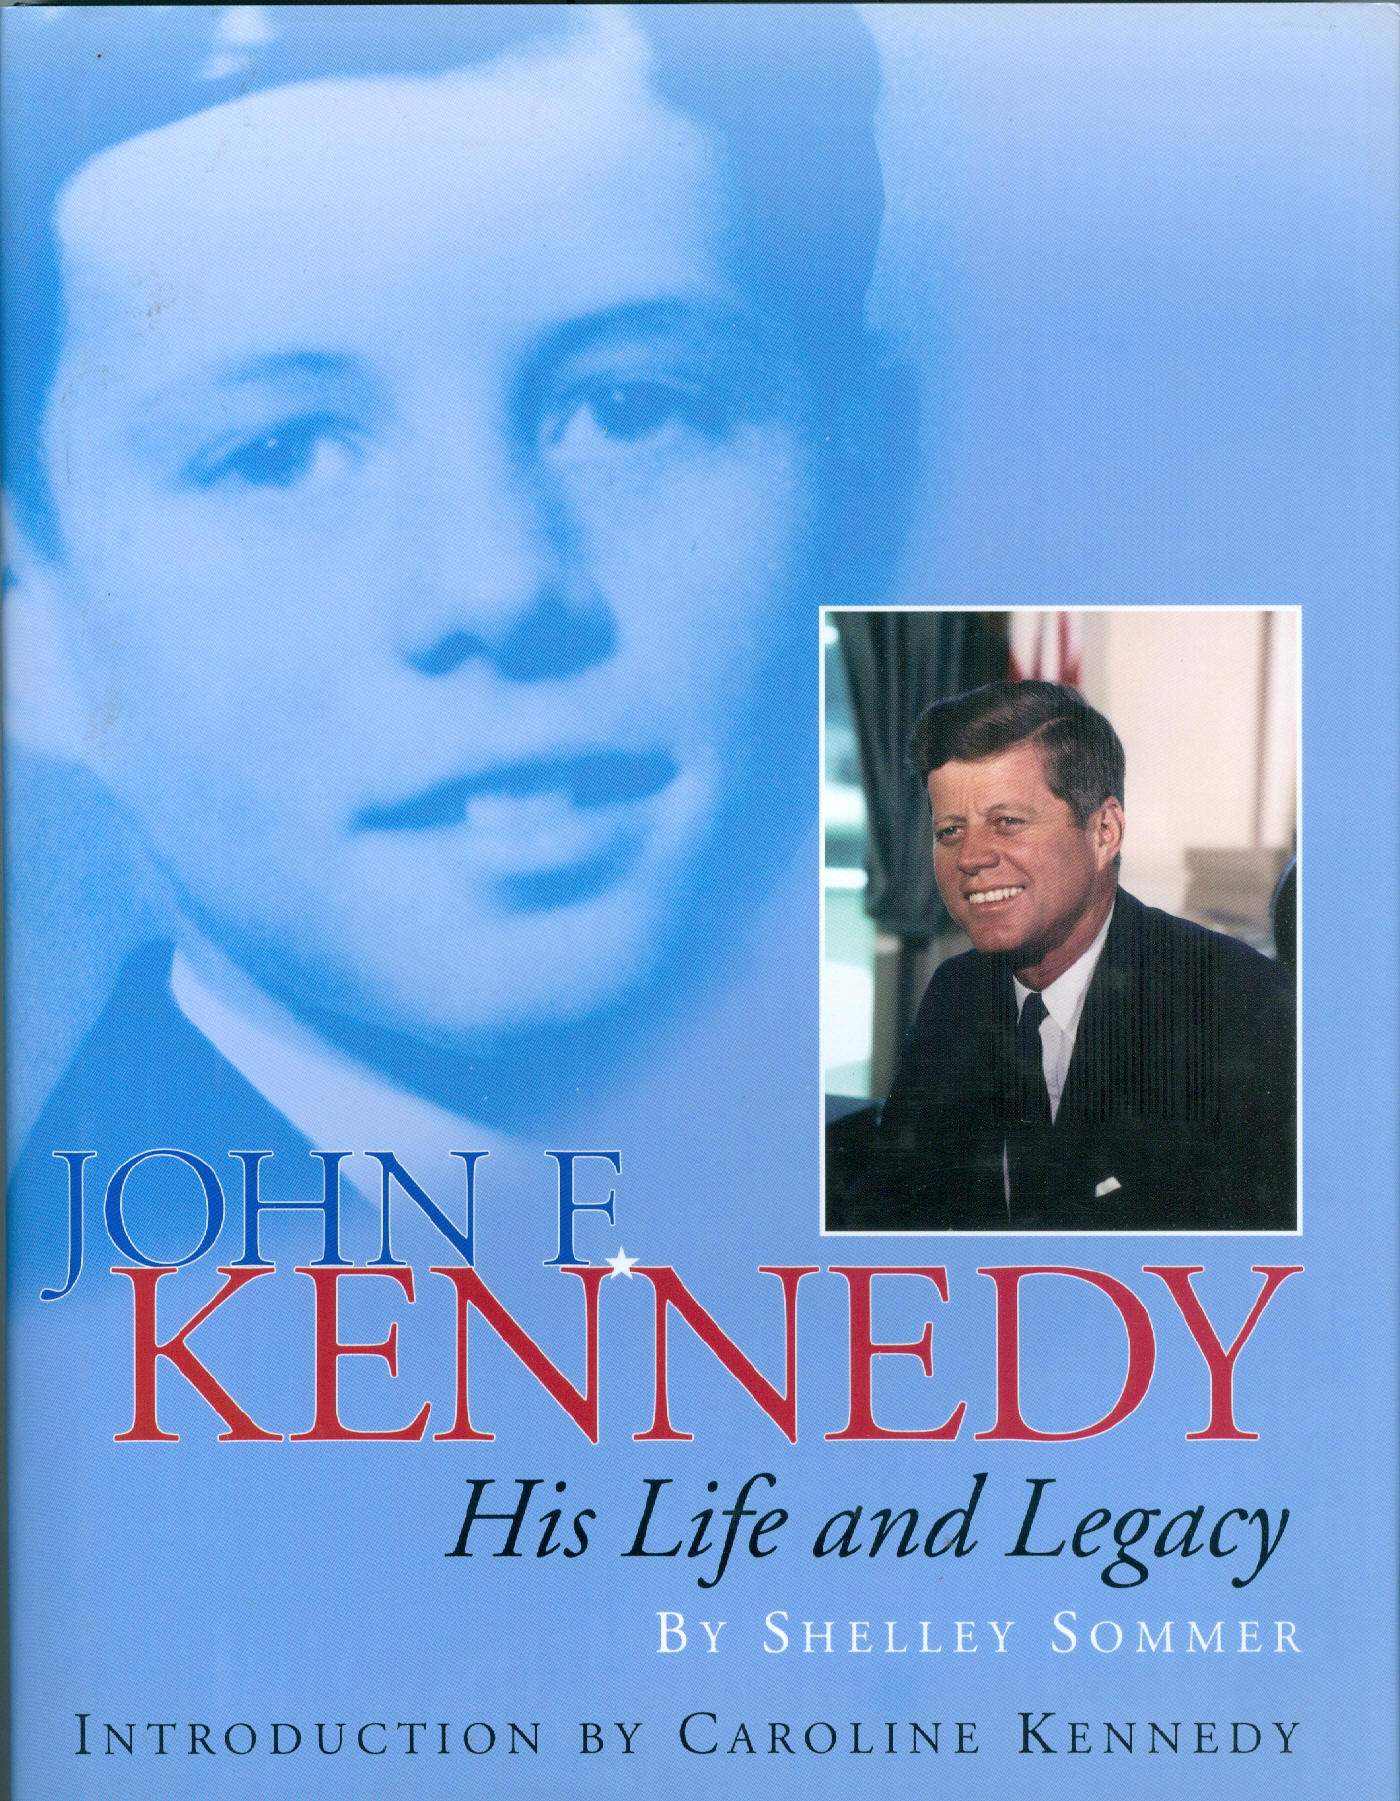 the life and legacy of president john f kennedy It lives on in the fusion of politics and celebrity created by patriarch joseph p kennedy and his sons: in john f kennedy's leadership style and call to grasp the family's substantive contribution to national life, start with jfk he was president for only 1,000 the kennedy family legacy.